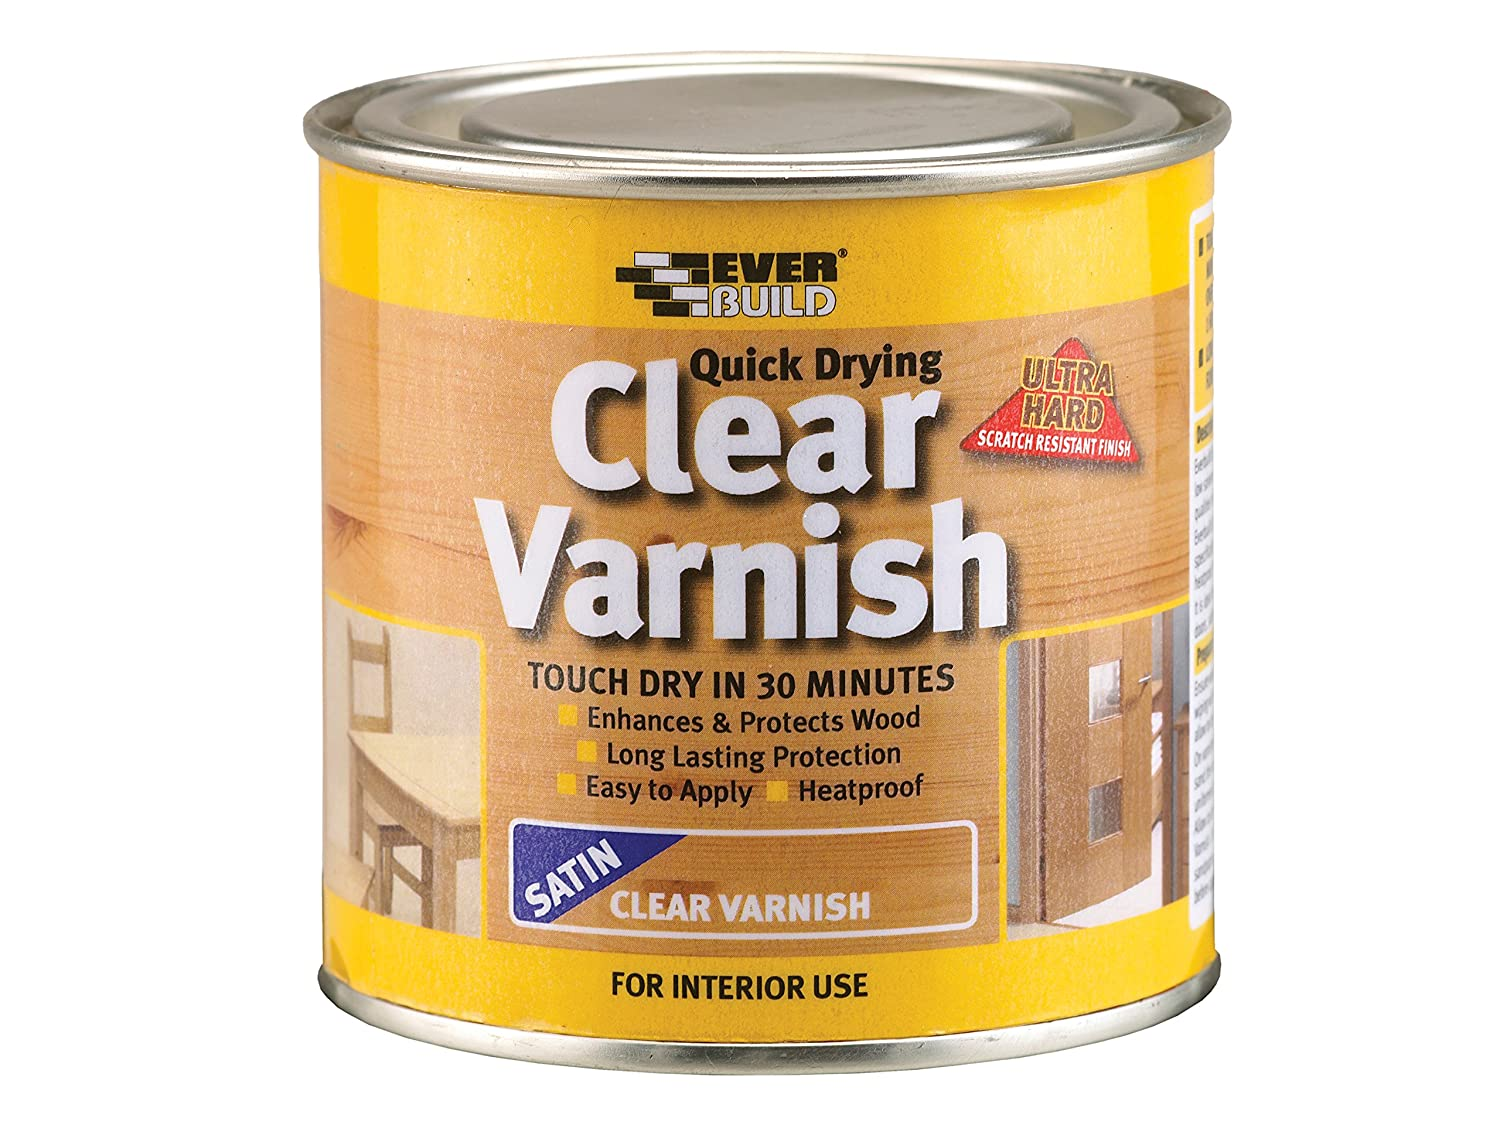 Everbuild EVBWVARCLS07 Quick Dry Wood Varnish Satin Clear 750 ml Toolbank